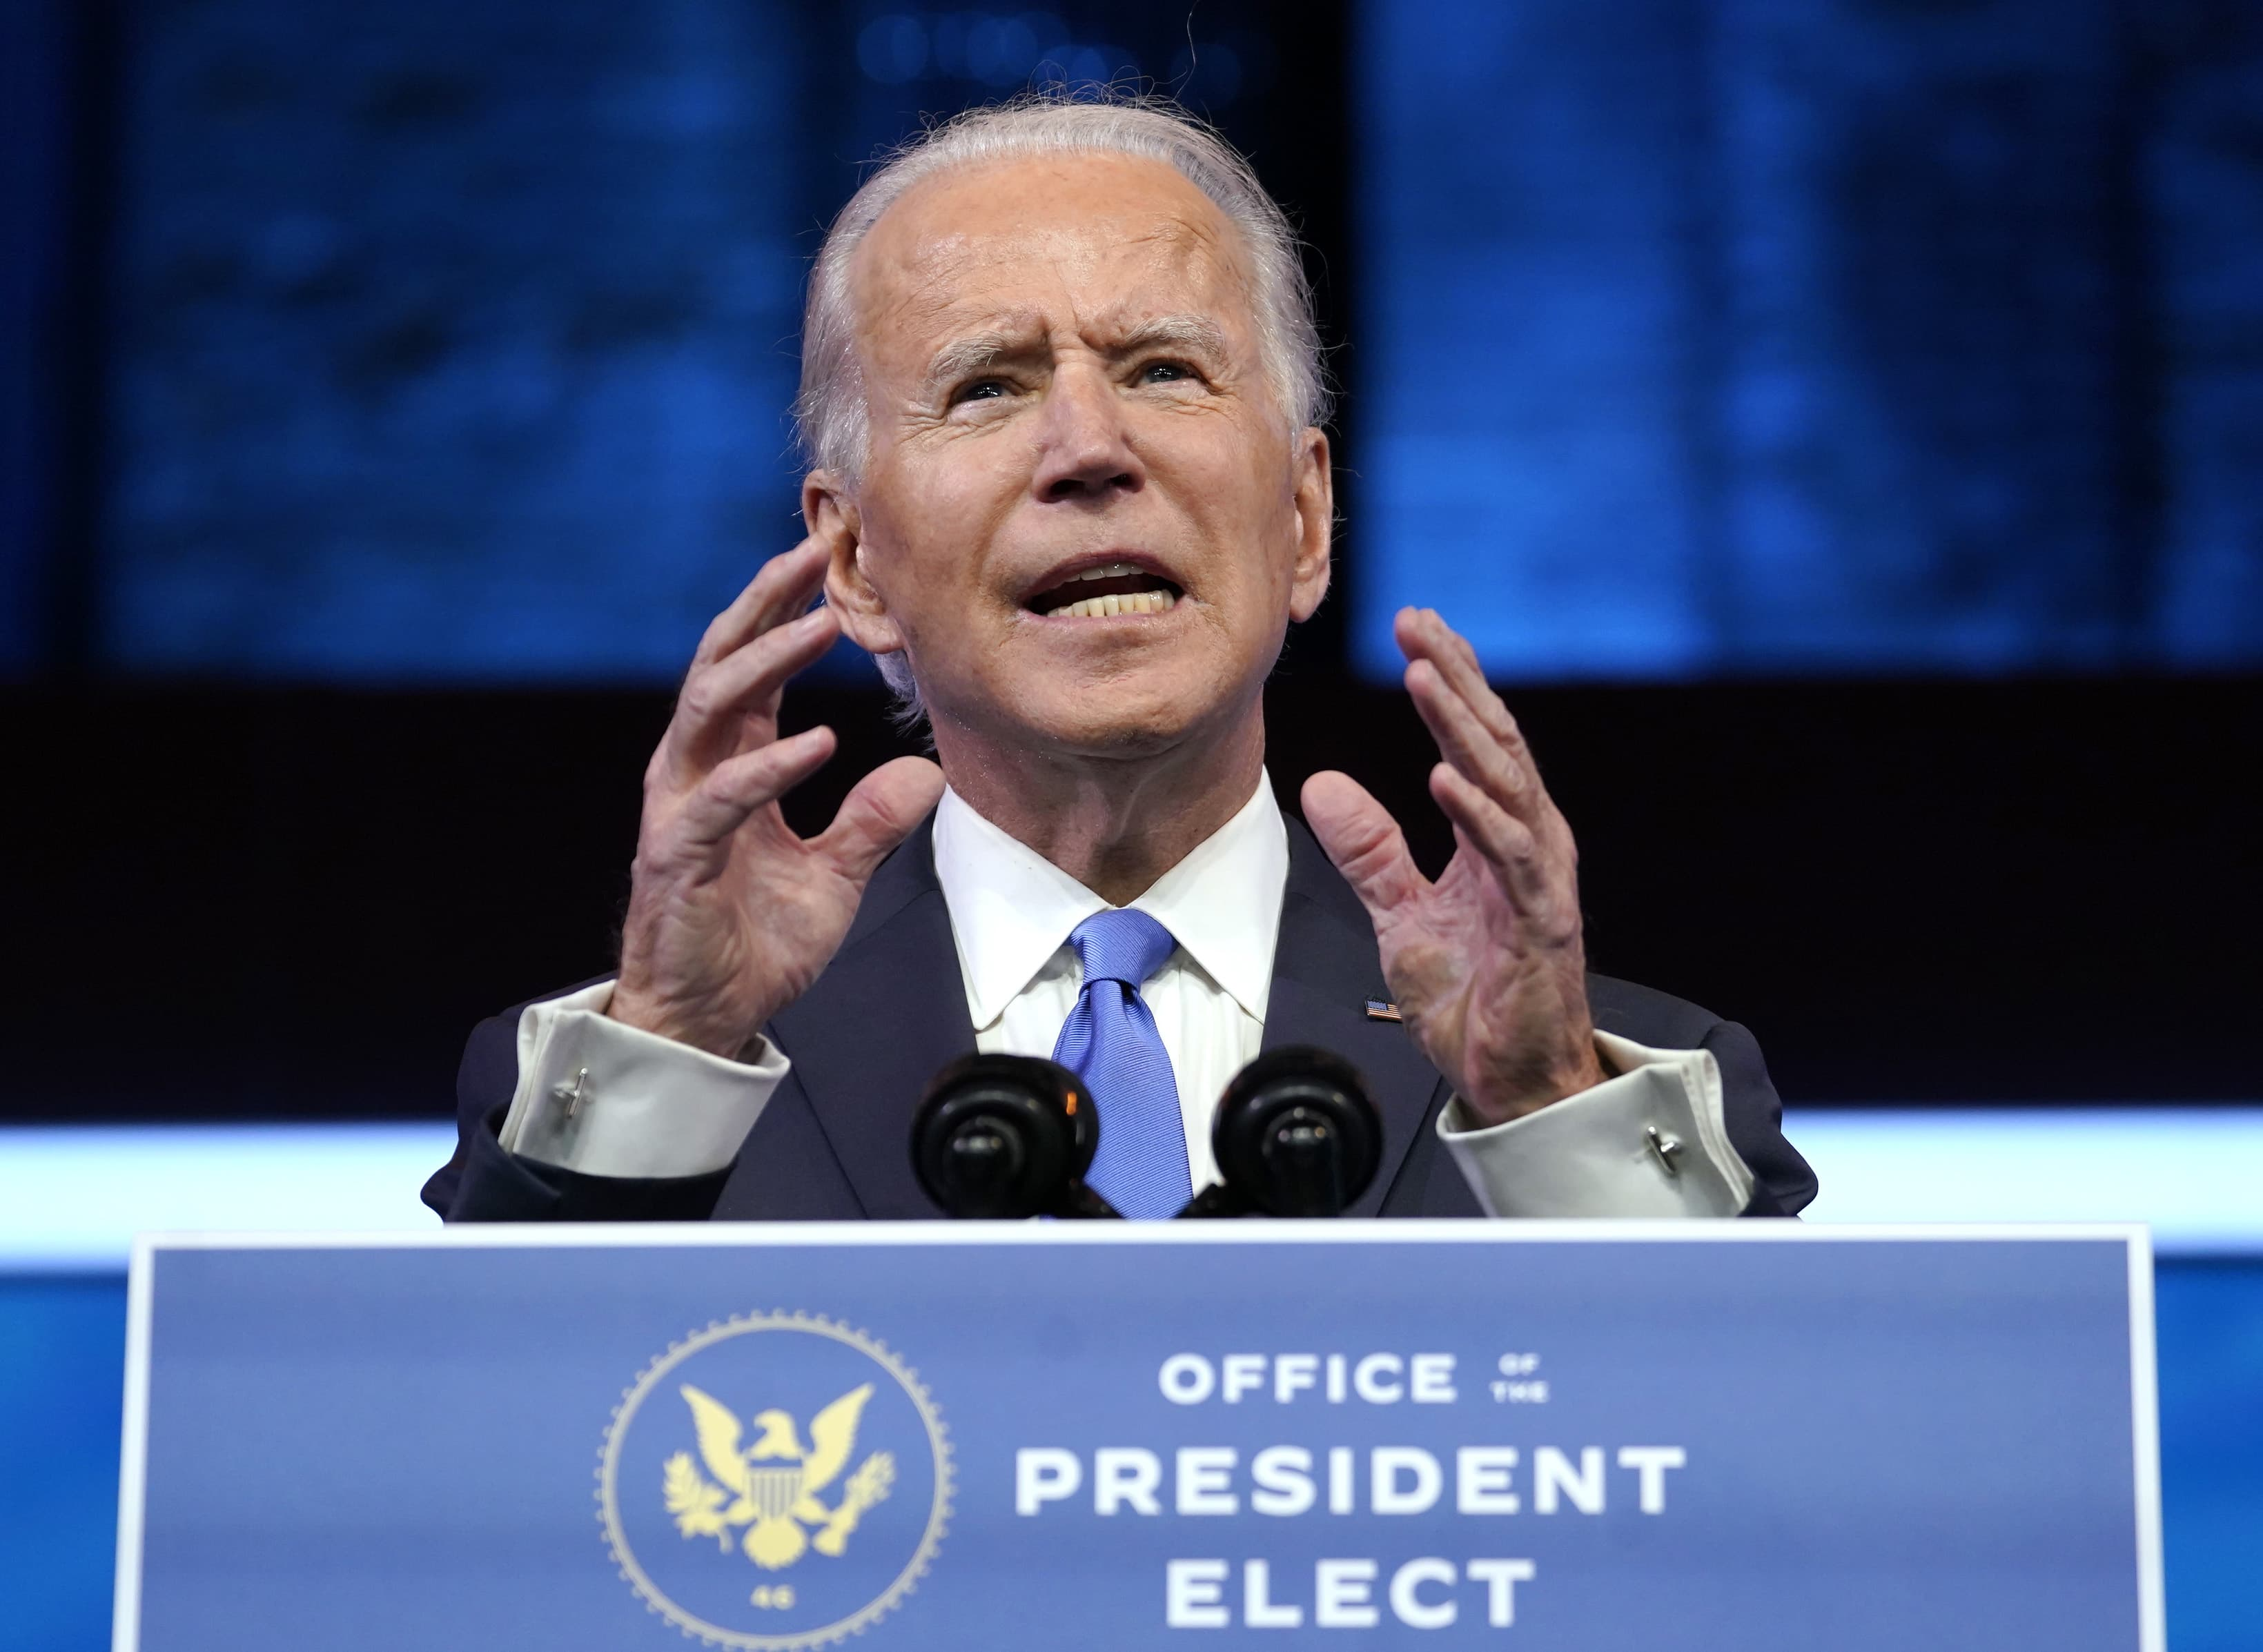 Biden calls for unity and healing after Electoral College certifies his victory